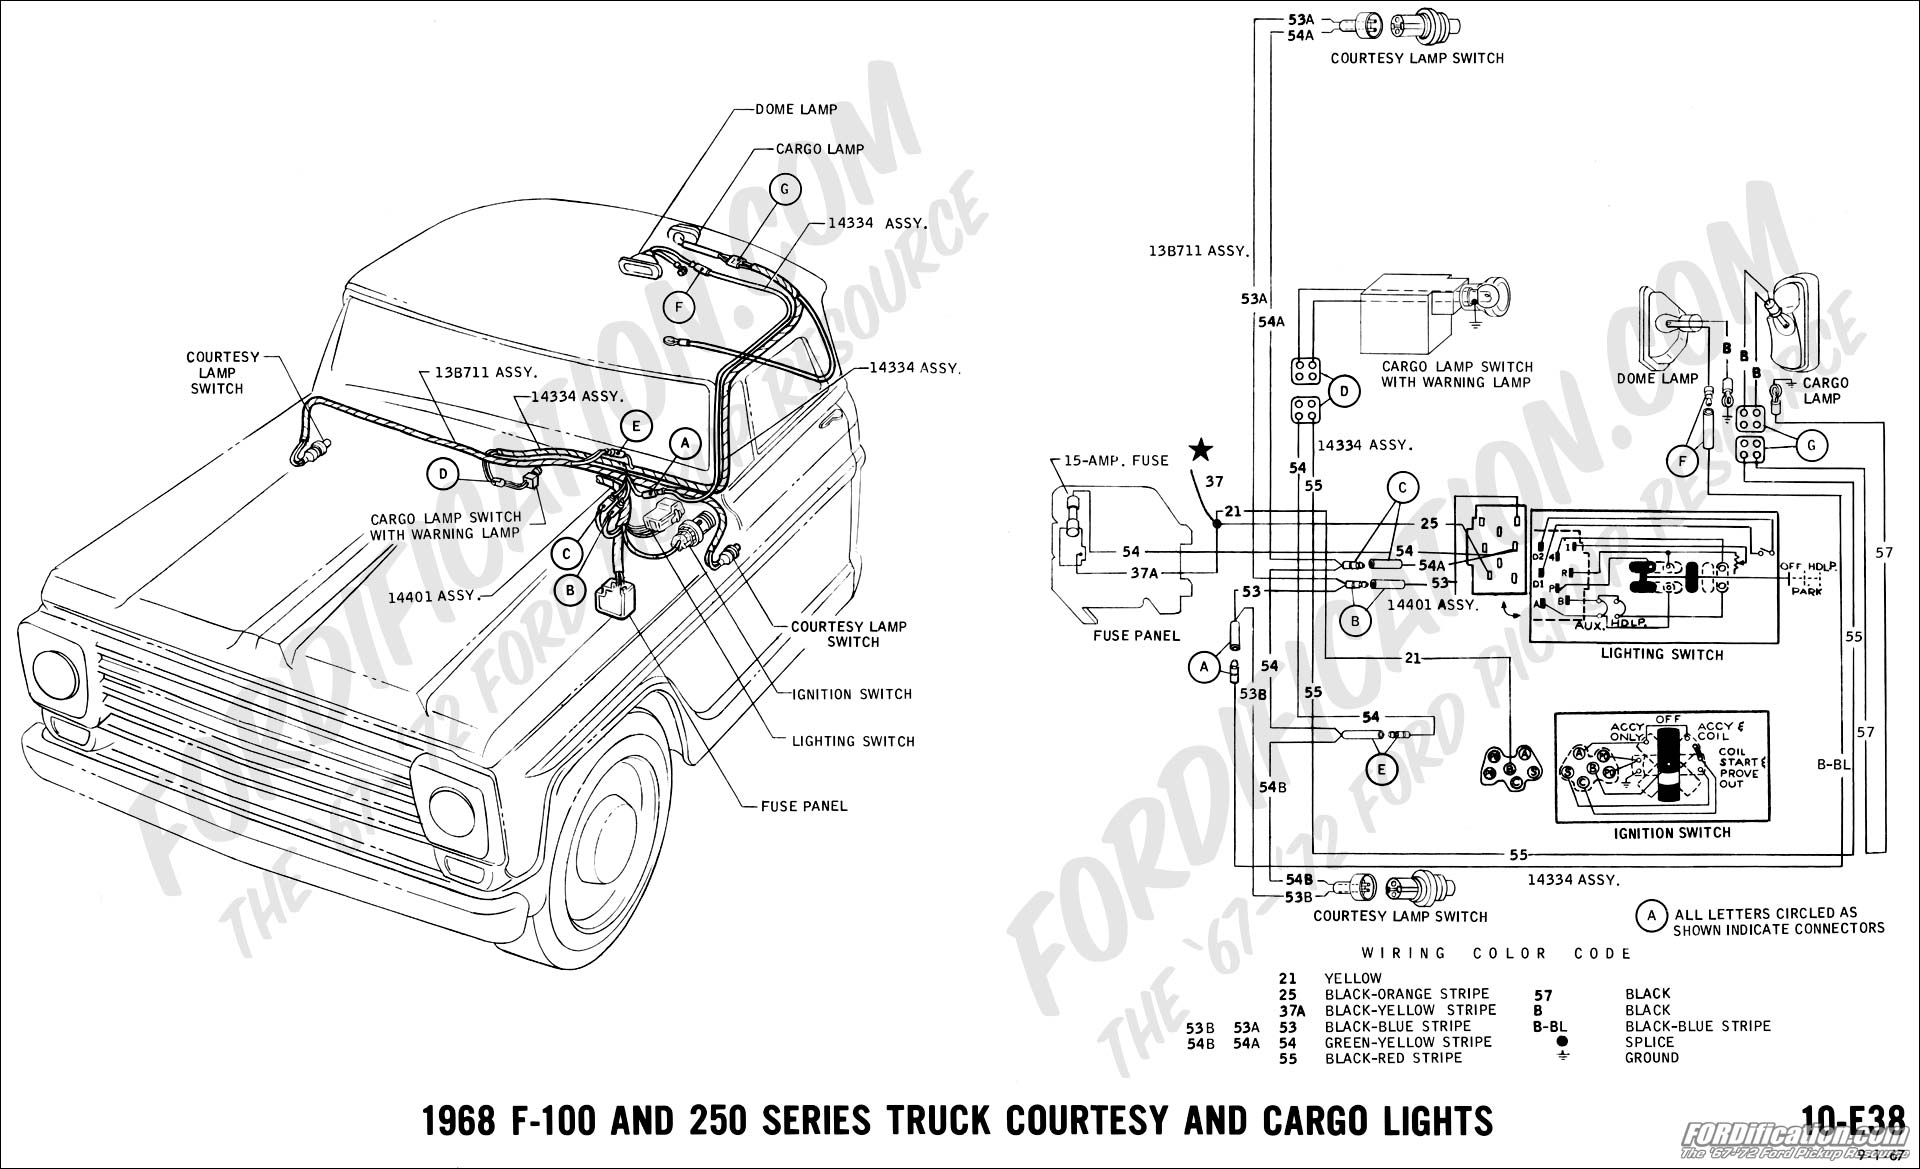 1970 Ford Truck Wire Harness | Wiring Diagram  F Gauge Cluster Wiring Diagram on 1979 f250 wiring diagram, 1979 bronco wiring diagram, 1979 corolla wiring diagram, 1979 mustang wiring diagram, 1979 lincoln wiring diagram, 1979 f150 wiring diagram, 1979 blazer wiring diagram, 1979 f100 wiring diagram, 1979 silverado wiring diagram, 1979 malibu wiring diagram, 1979 dodge wiring diagram, 1979 f700 wiring diagram, 1979 suburban wiring diagram,